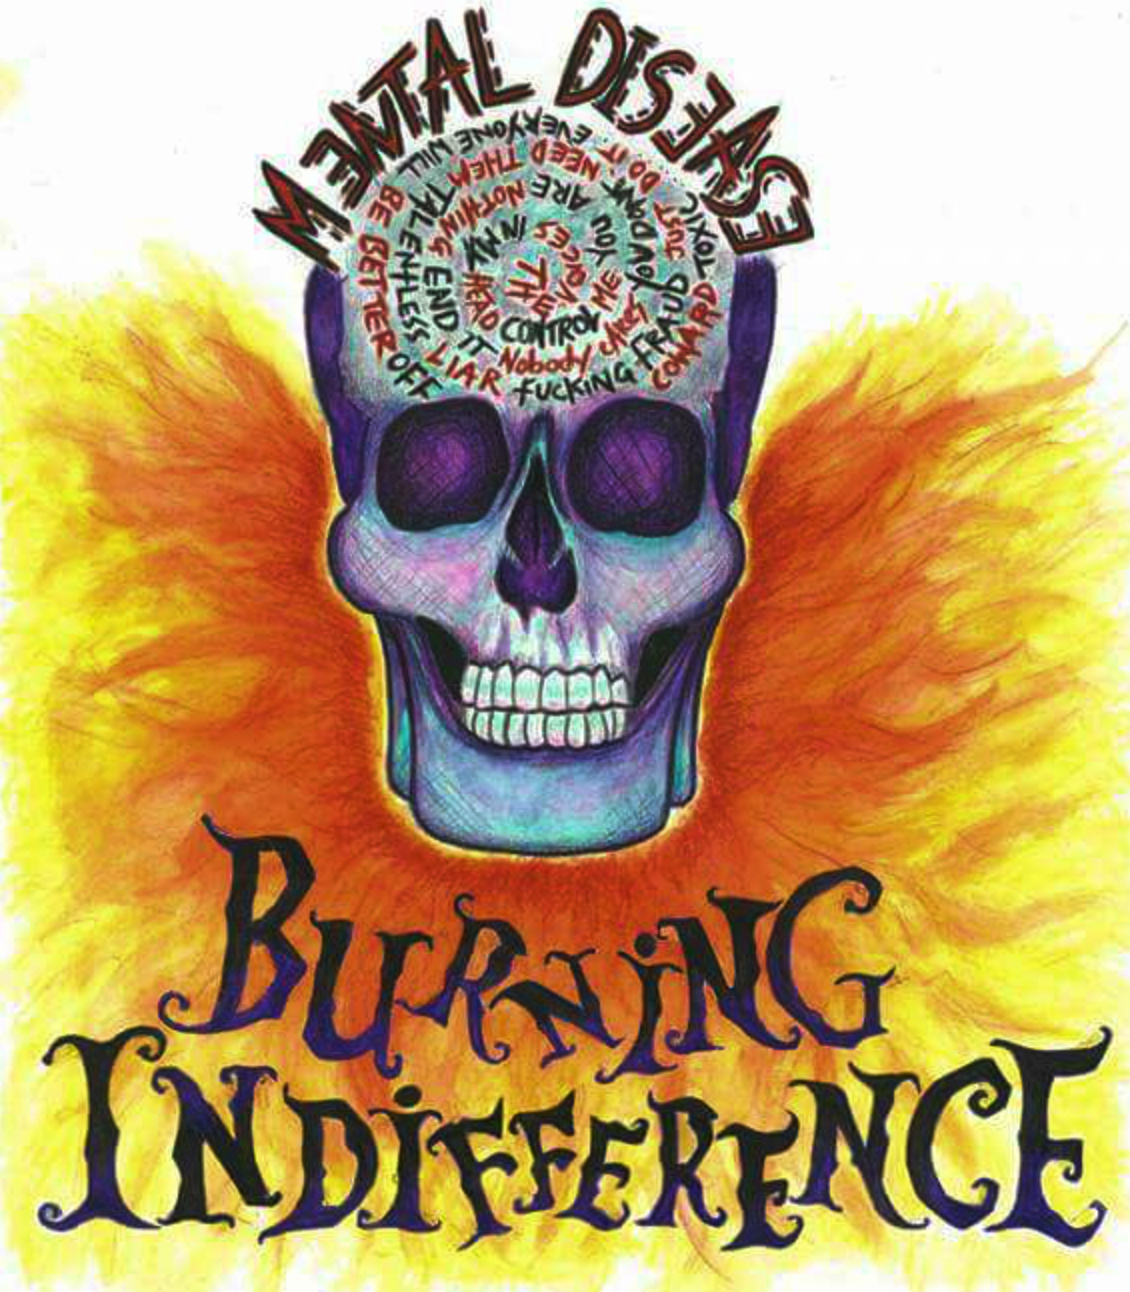 Burning Indifference